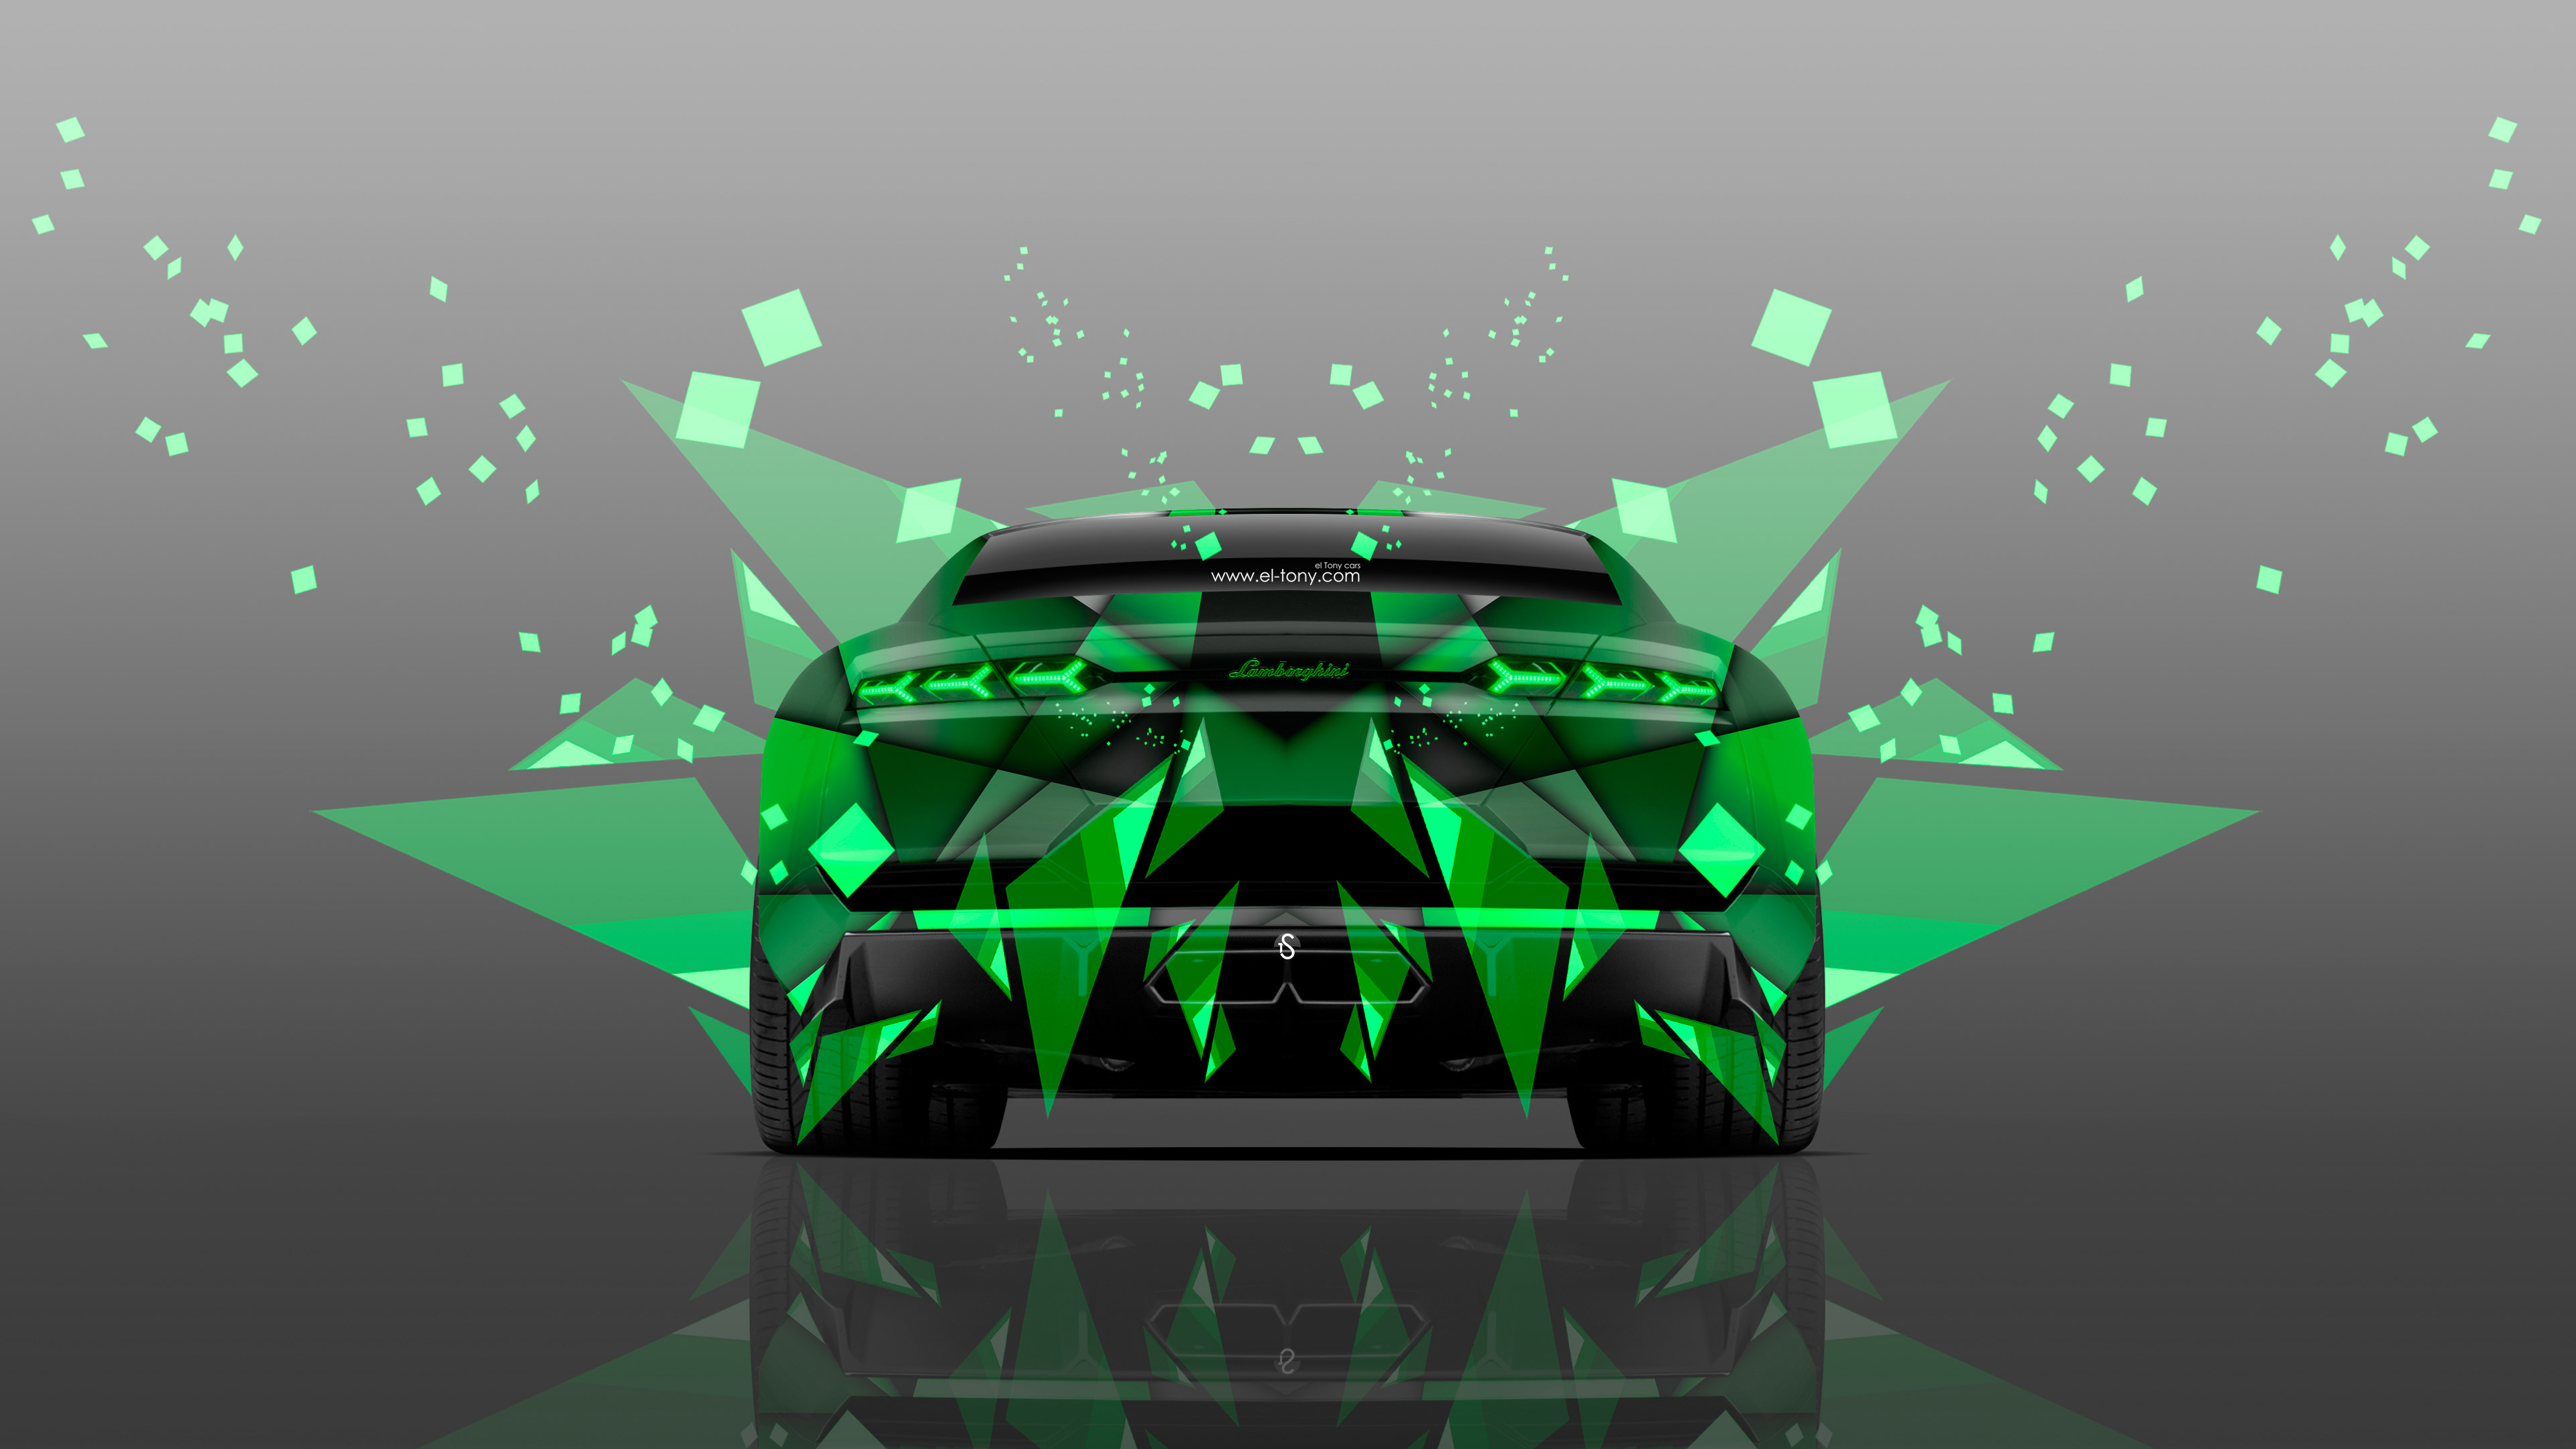 Lamborghini-Estoque-Back-Abstract-Aerography-Car-2014-Green-Colors-4K-Wallpapers-design-by-Tony-Kokhan-[www.el-tony.com]